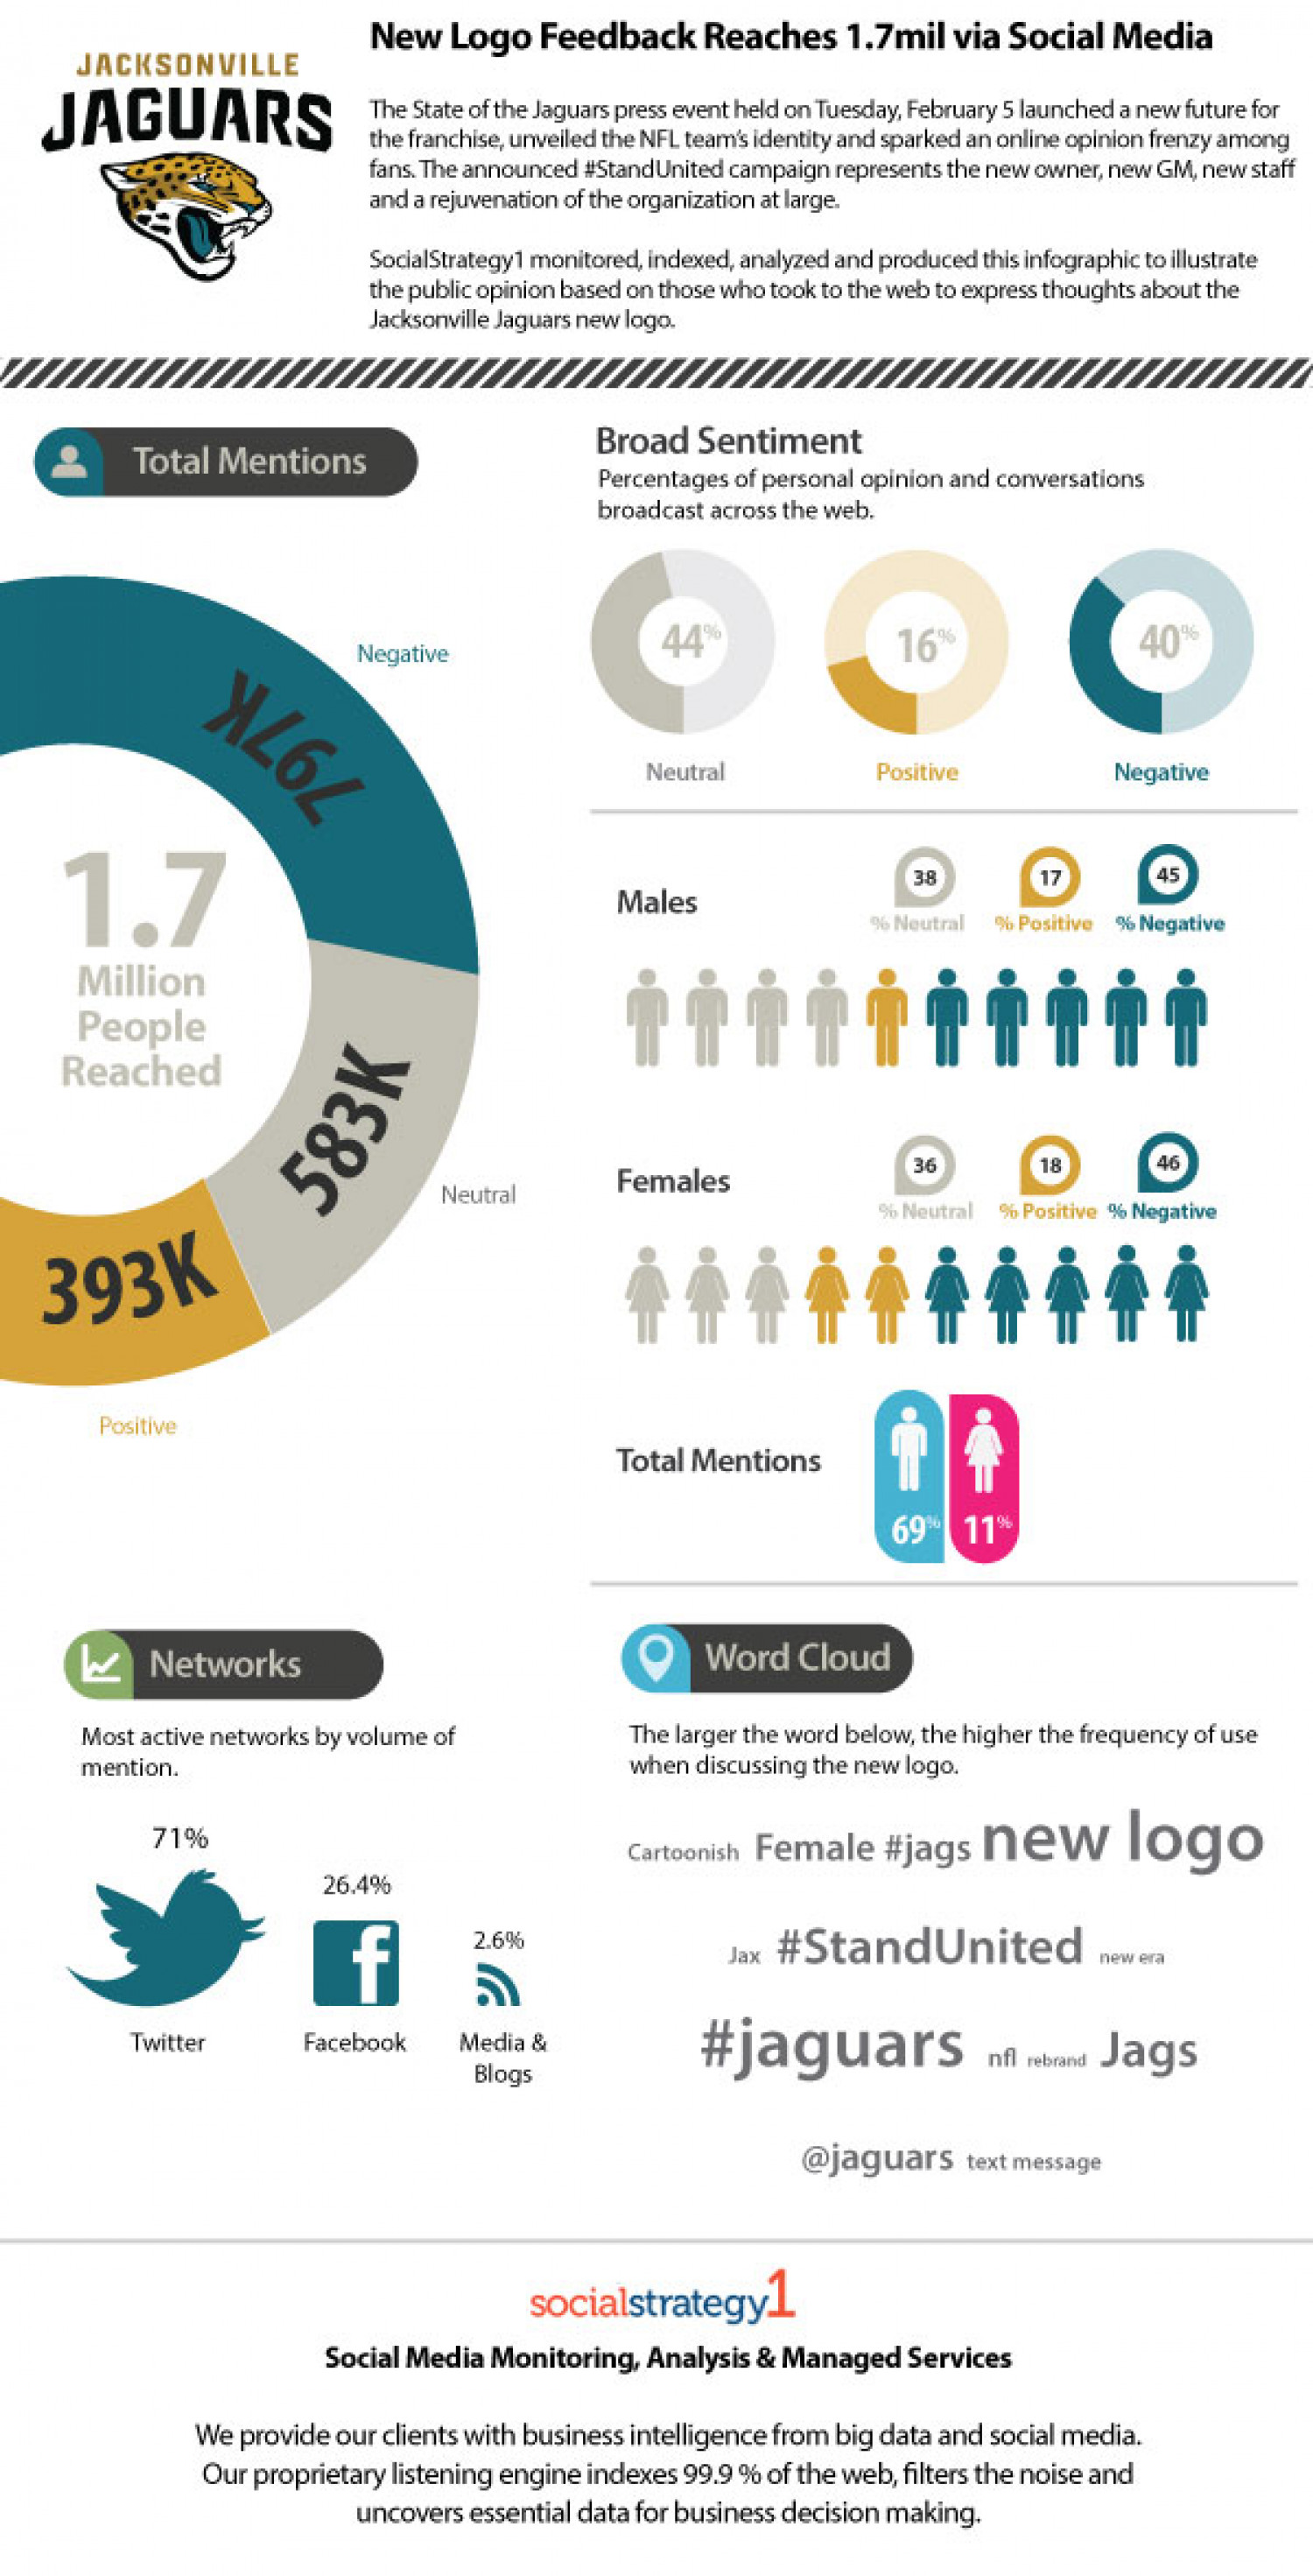 Jacksonville Jaguars' Fans React to New Logo on Social Media and Reach 1.7 Mil Infographic